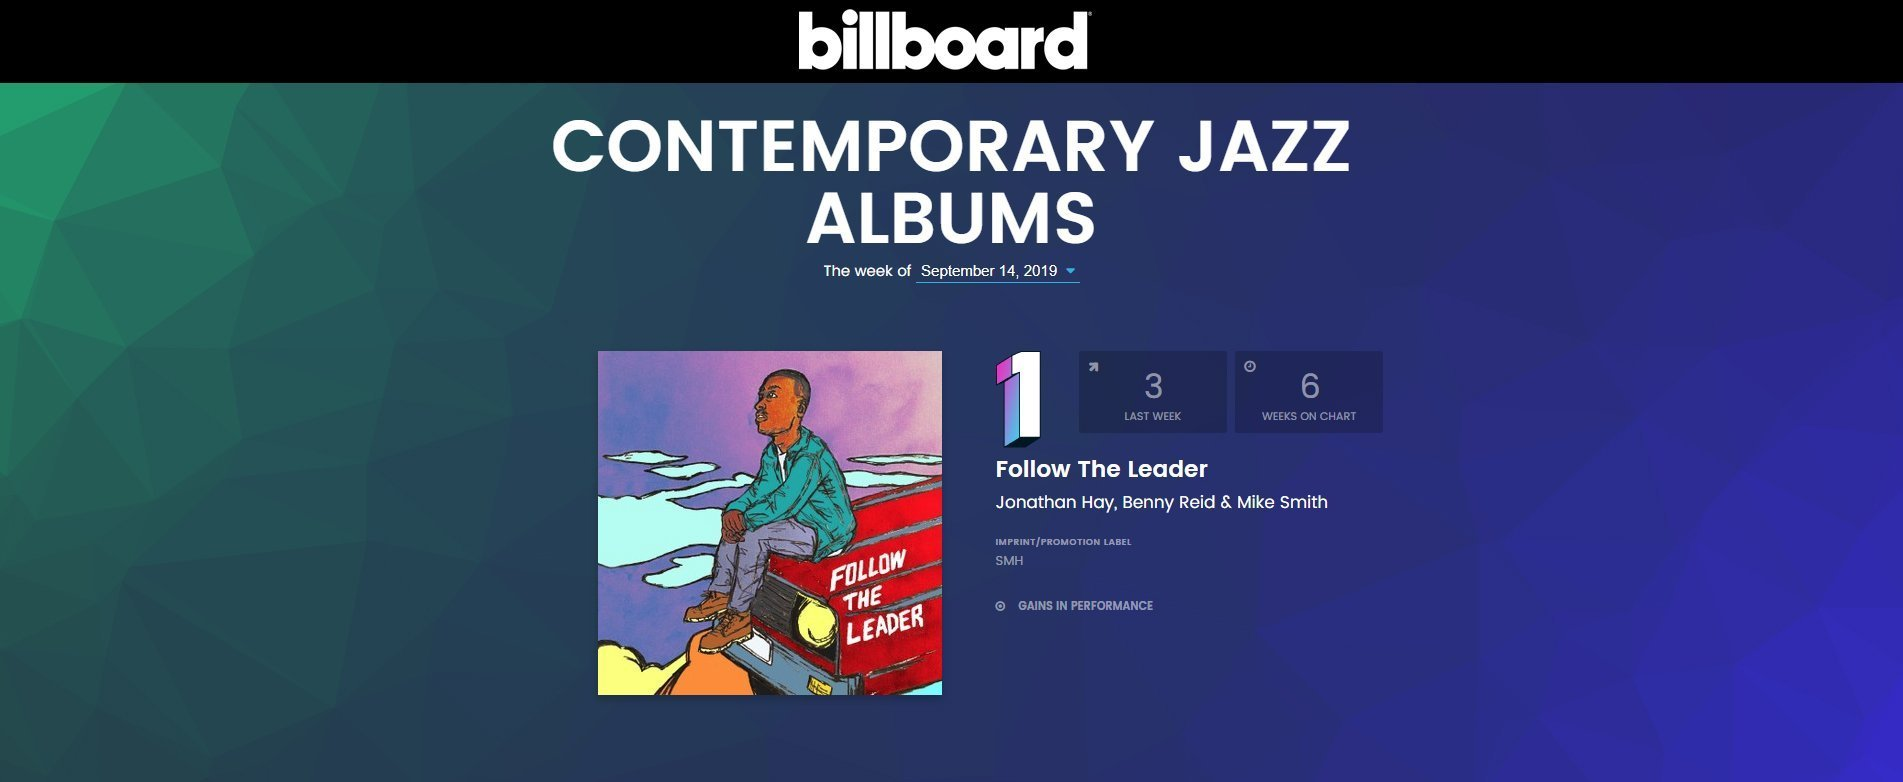 FYC19 Follow The Leader Billboard Number One